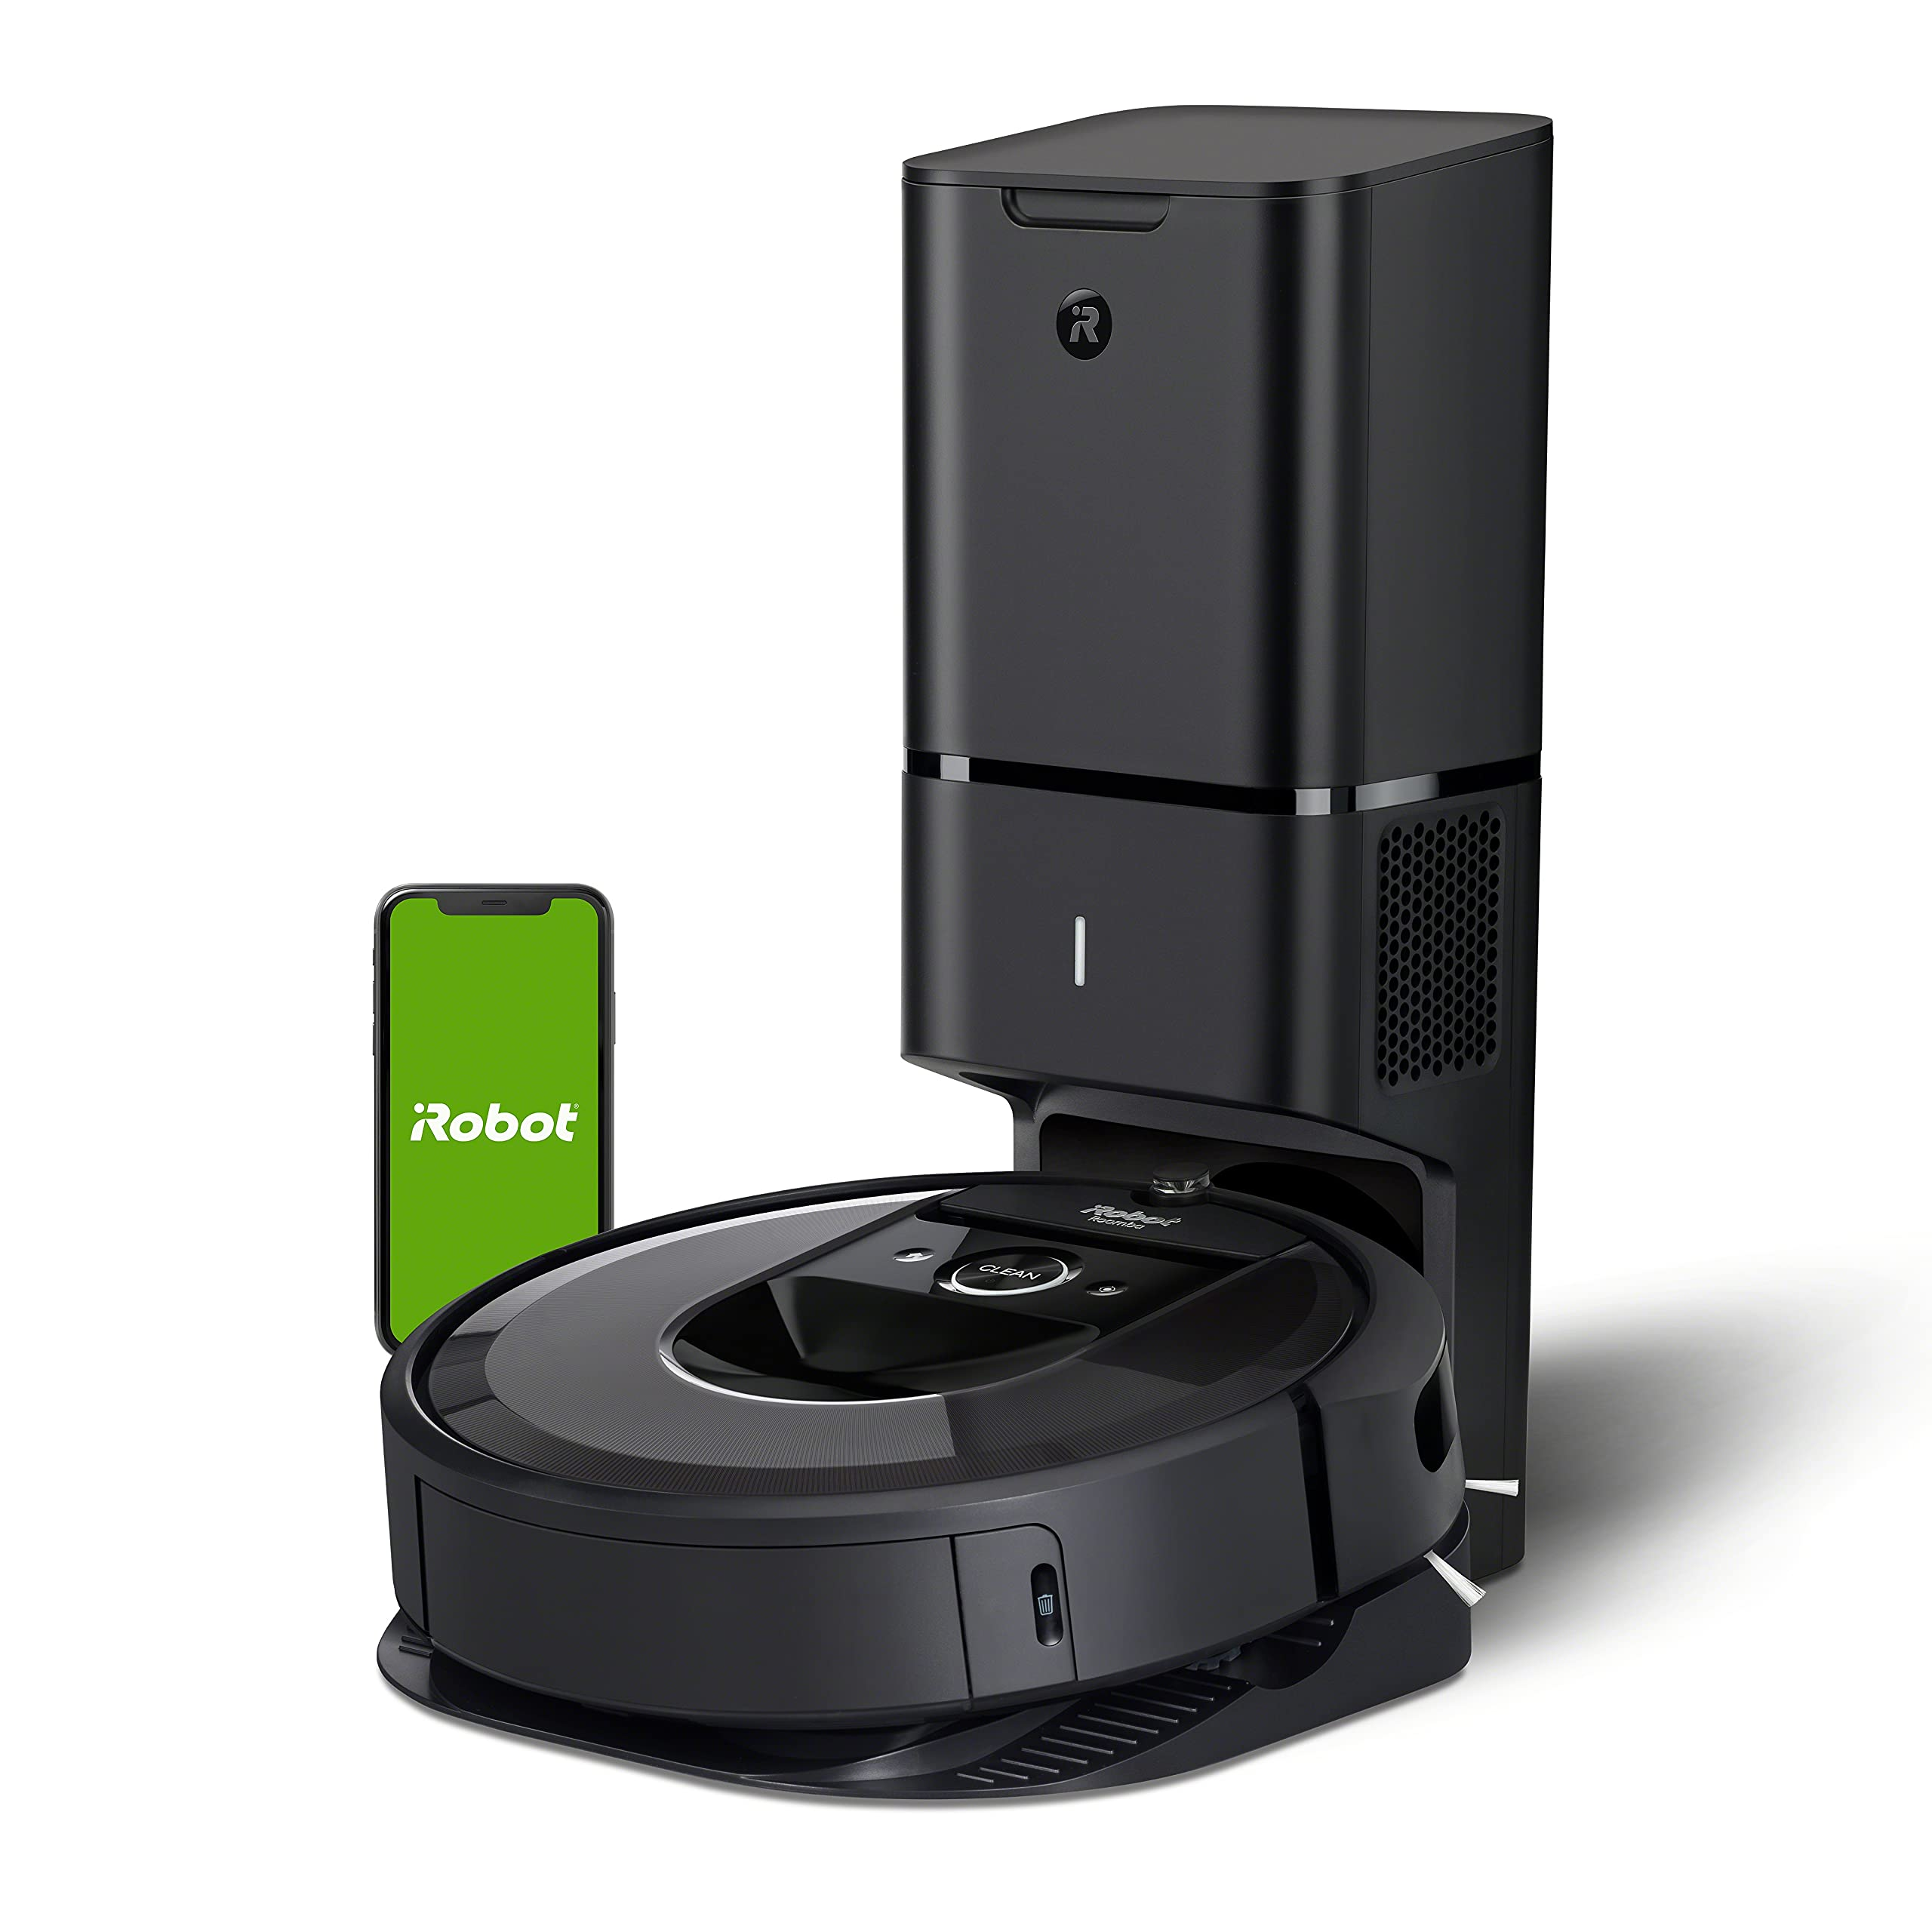 iRobot Roomba i7+ Robot Vacuum with Automatic Dirt Disposal for $799.00 (reg. $999.99)